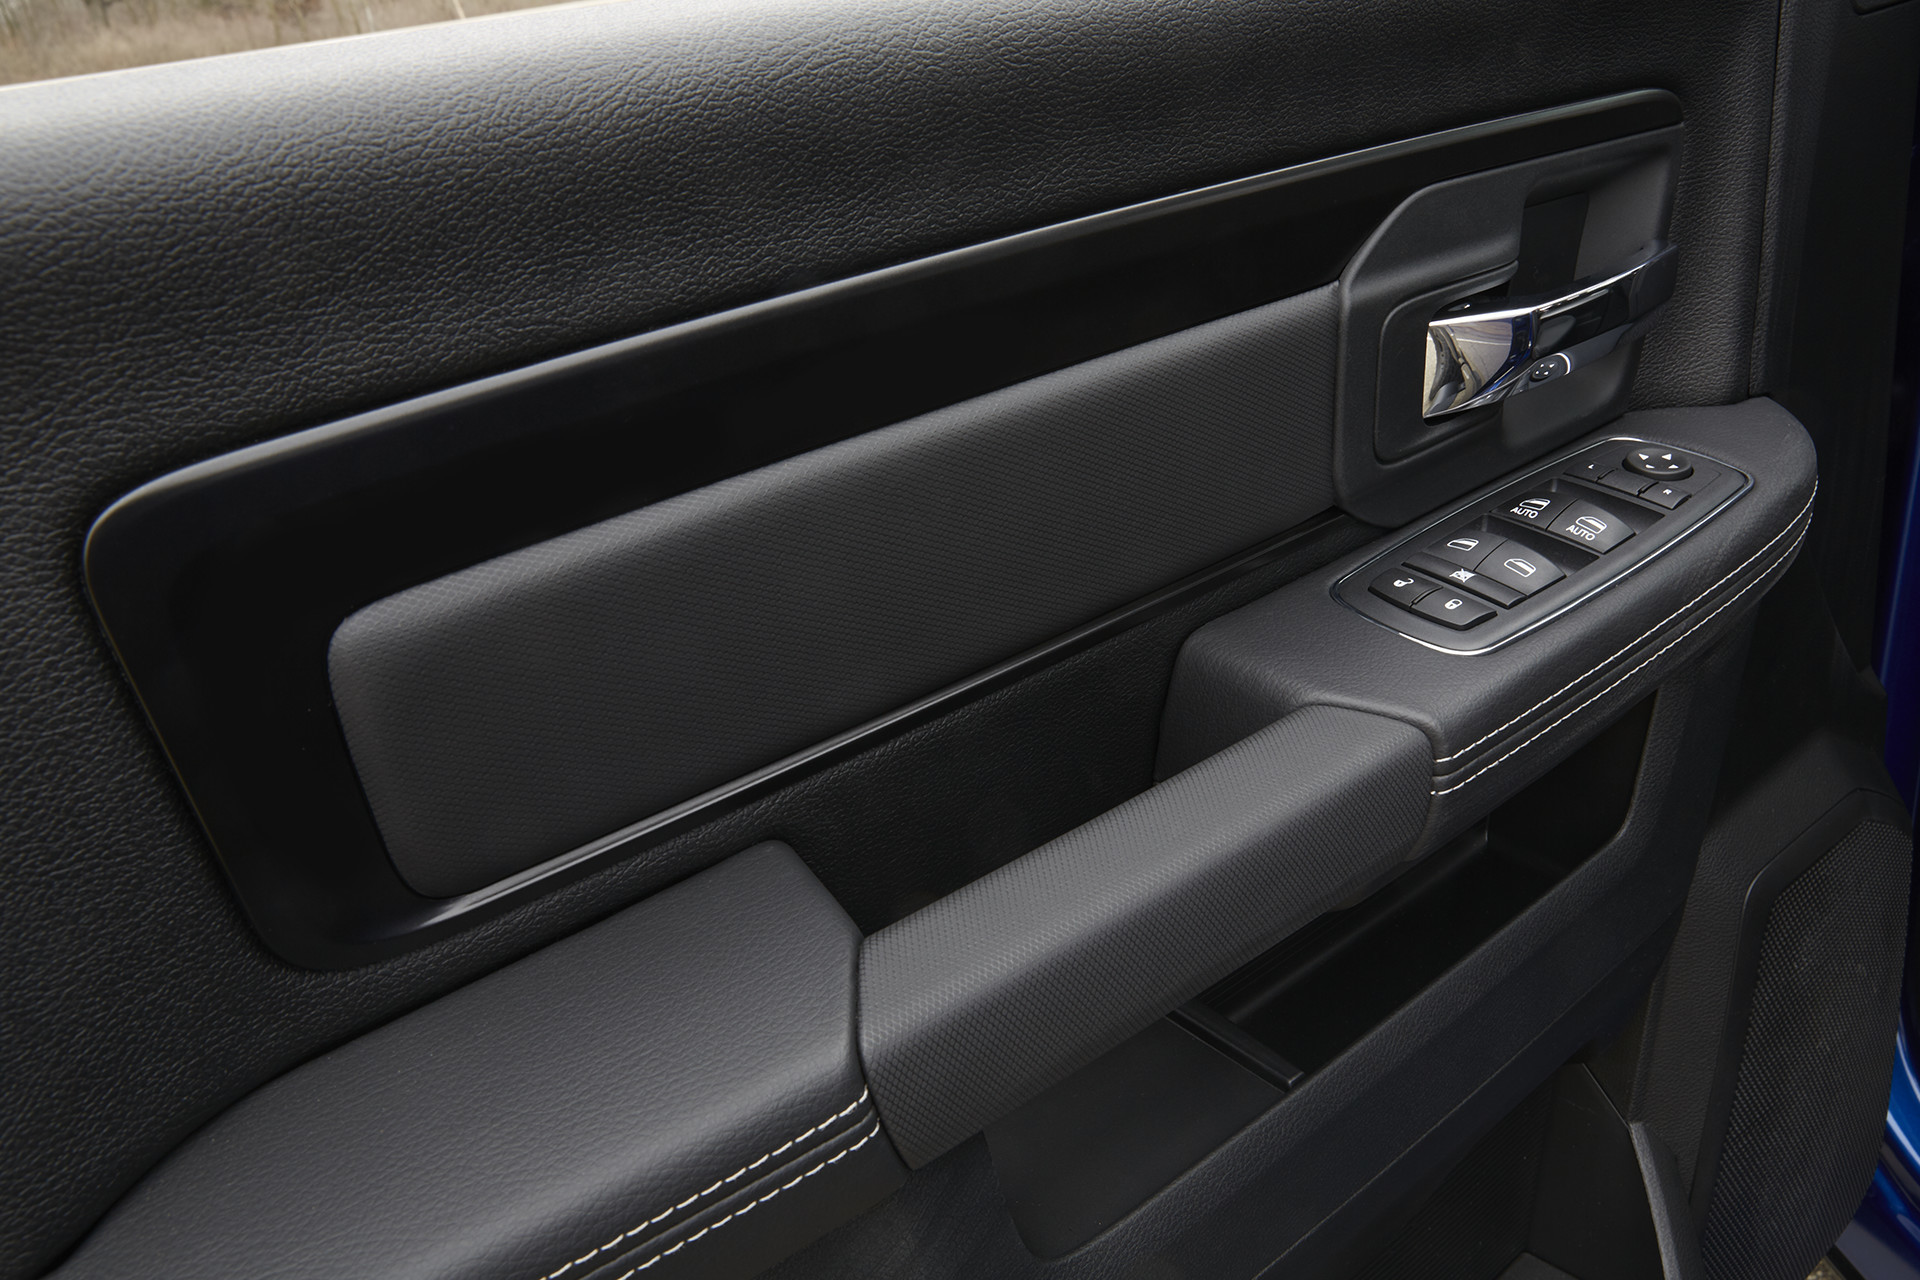 2018 RAM 1500 interior organized cabin convenience